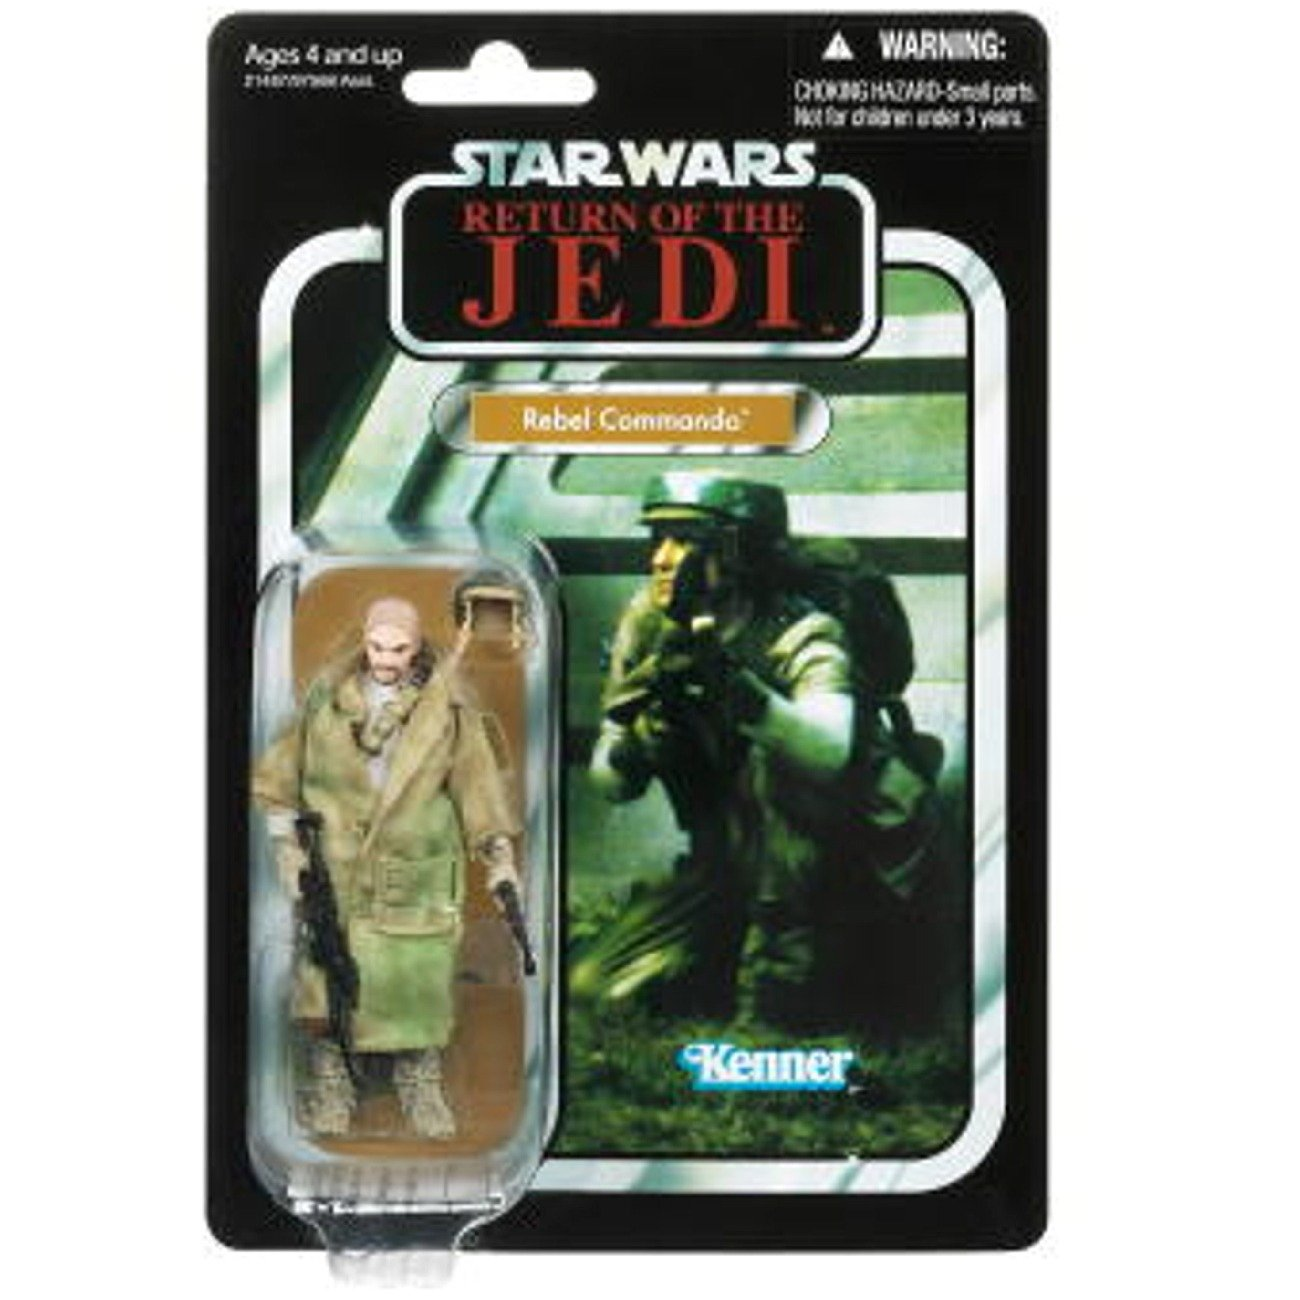 Star Wars 9,5 cm Vintage Figur Rebel Commando